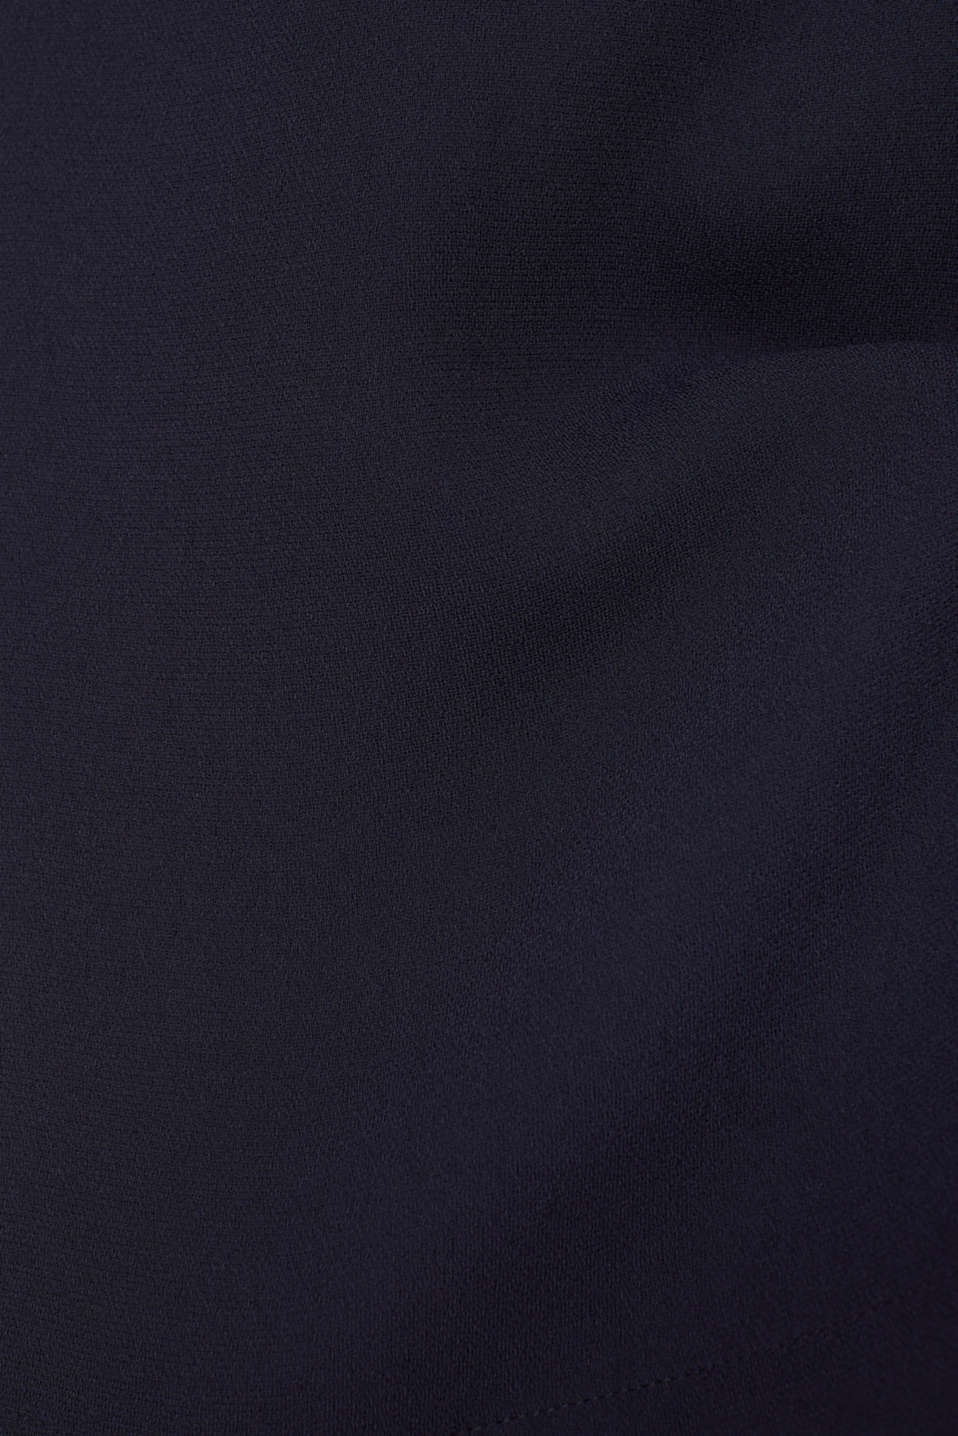 Crêpe skirt with a drawstring waistband, NAVY, detail image number 4